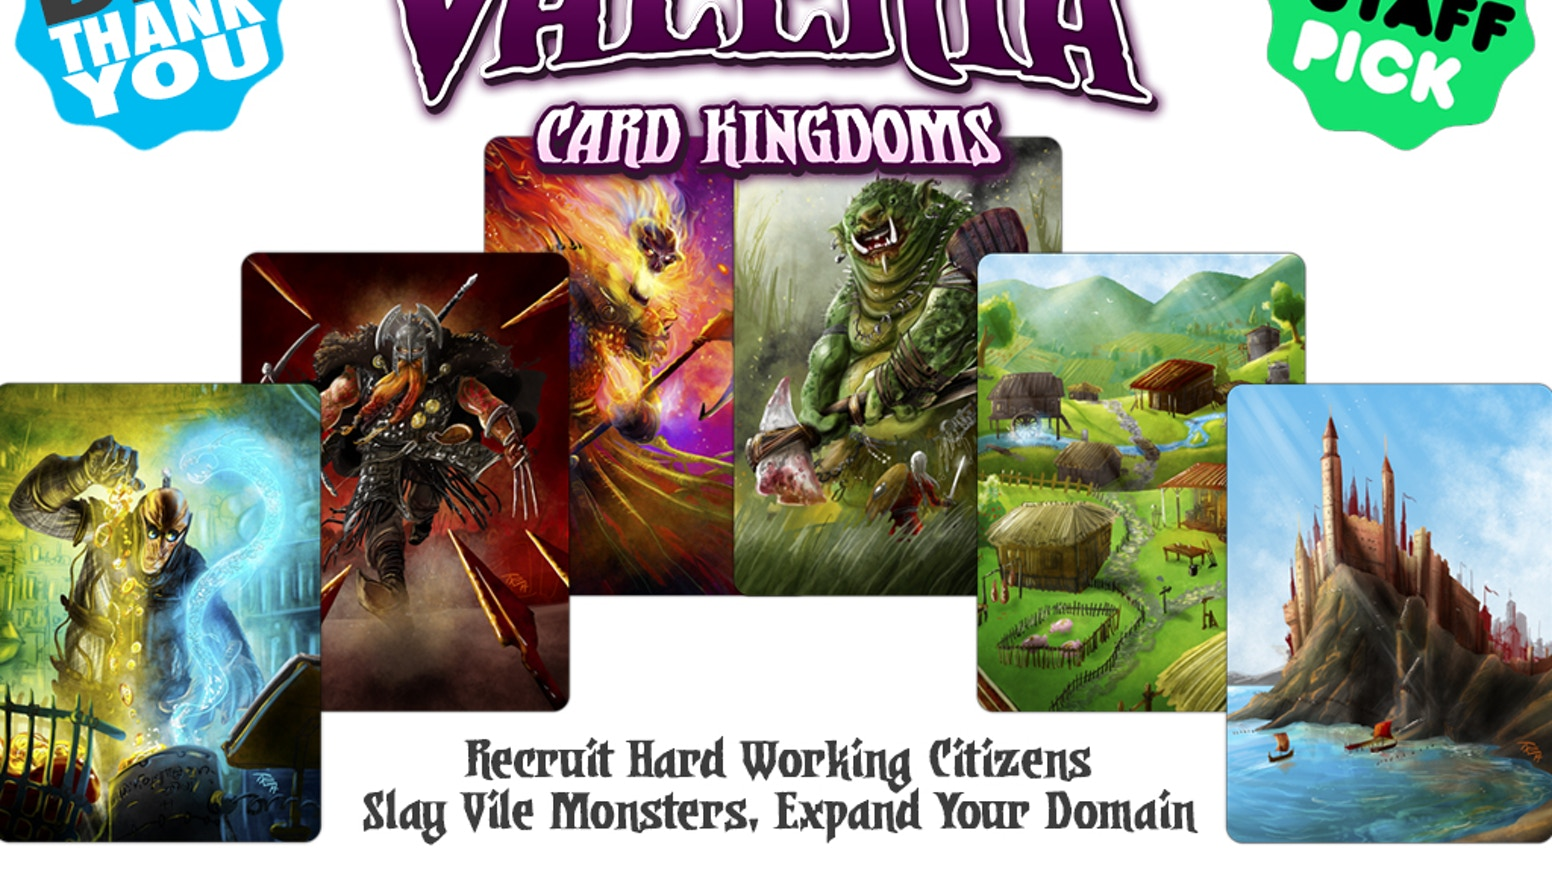 Recruit hard working citizens, slay vile monsters, expand your domain. Roll the dice and become ruler of Valeria!